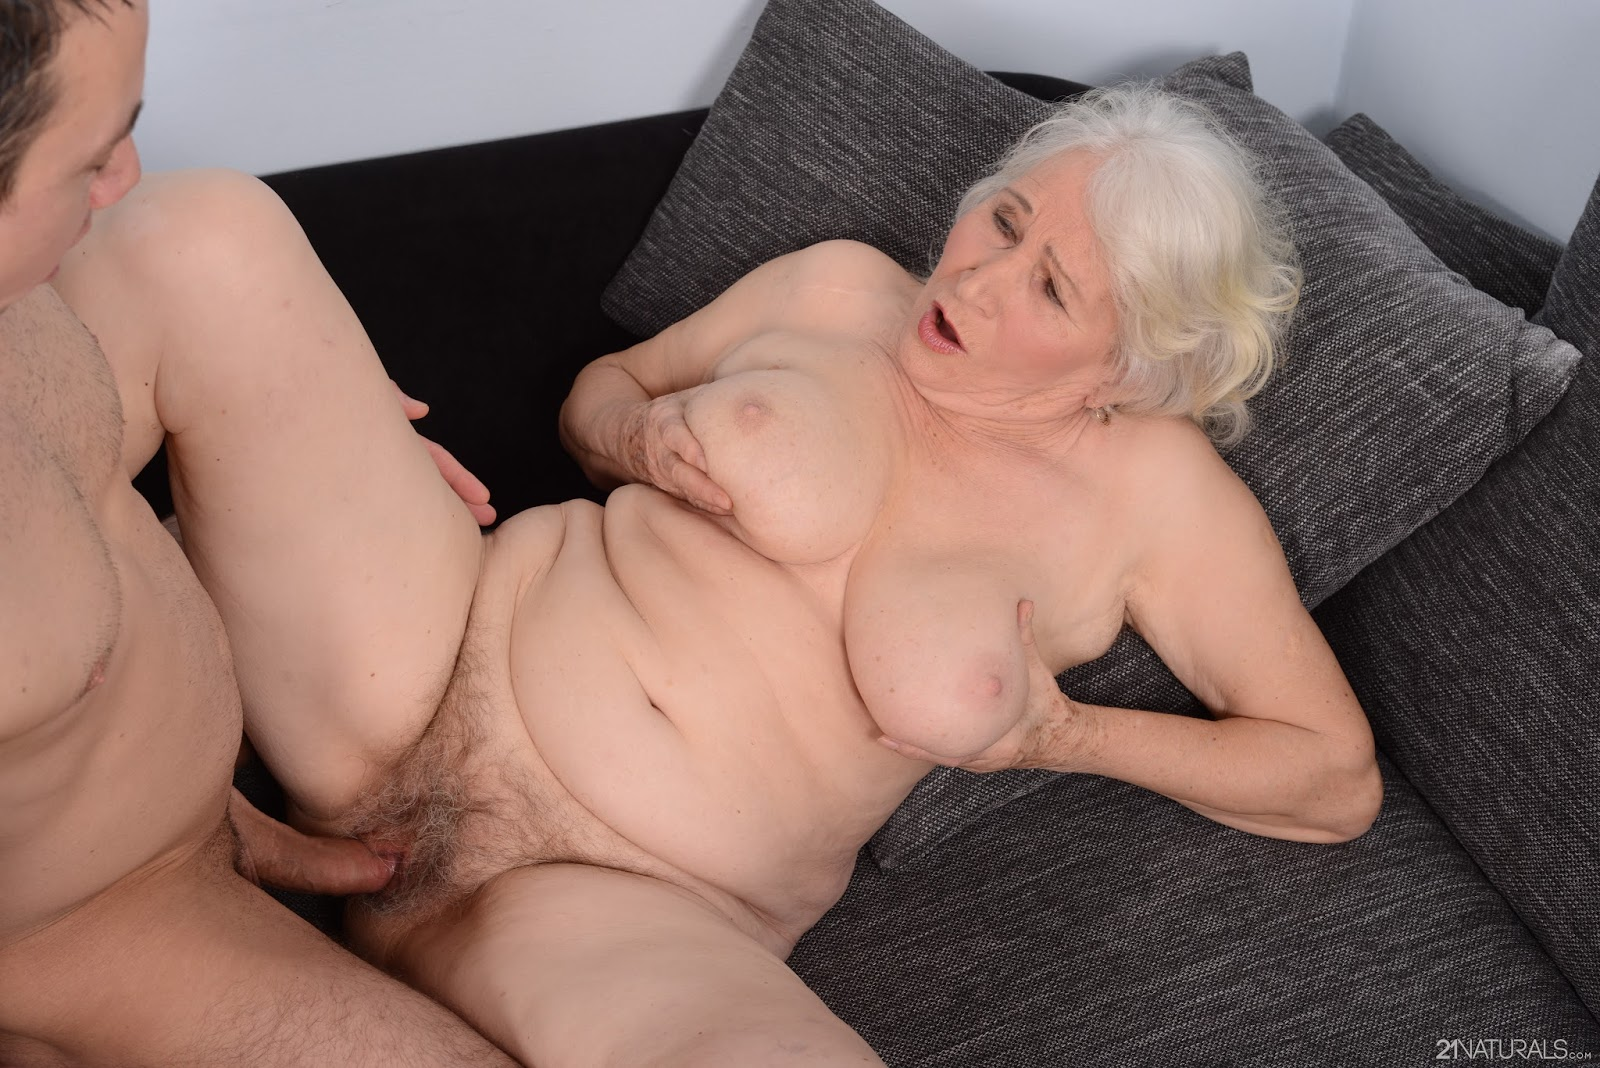 Hairy mature pussy porn